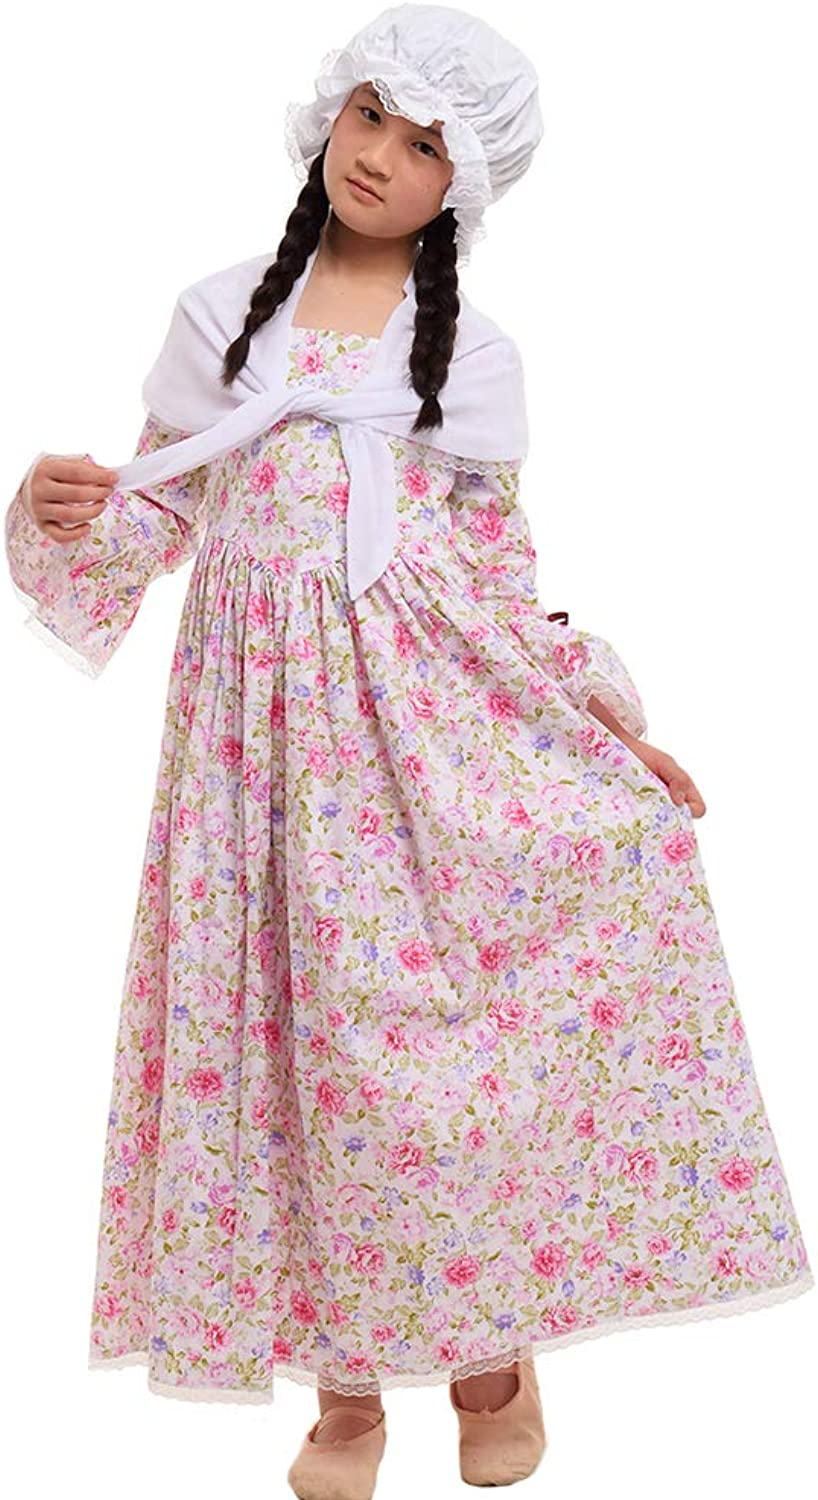 GRACEART Colonial Pioneer Girl Costume 100% Cotton